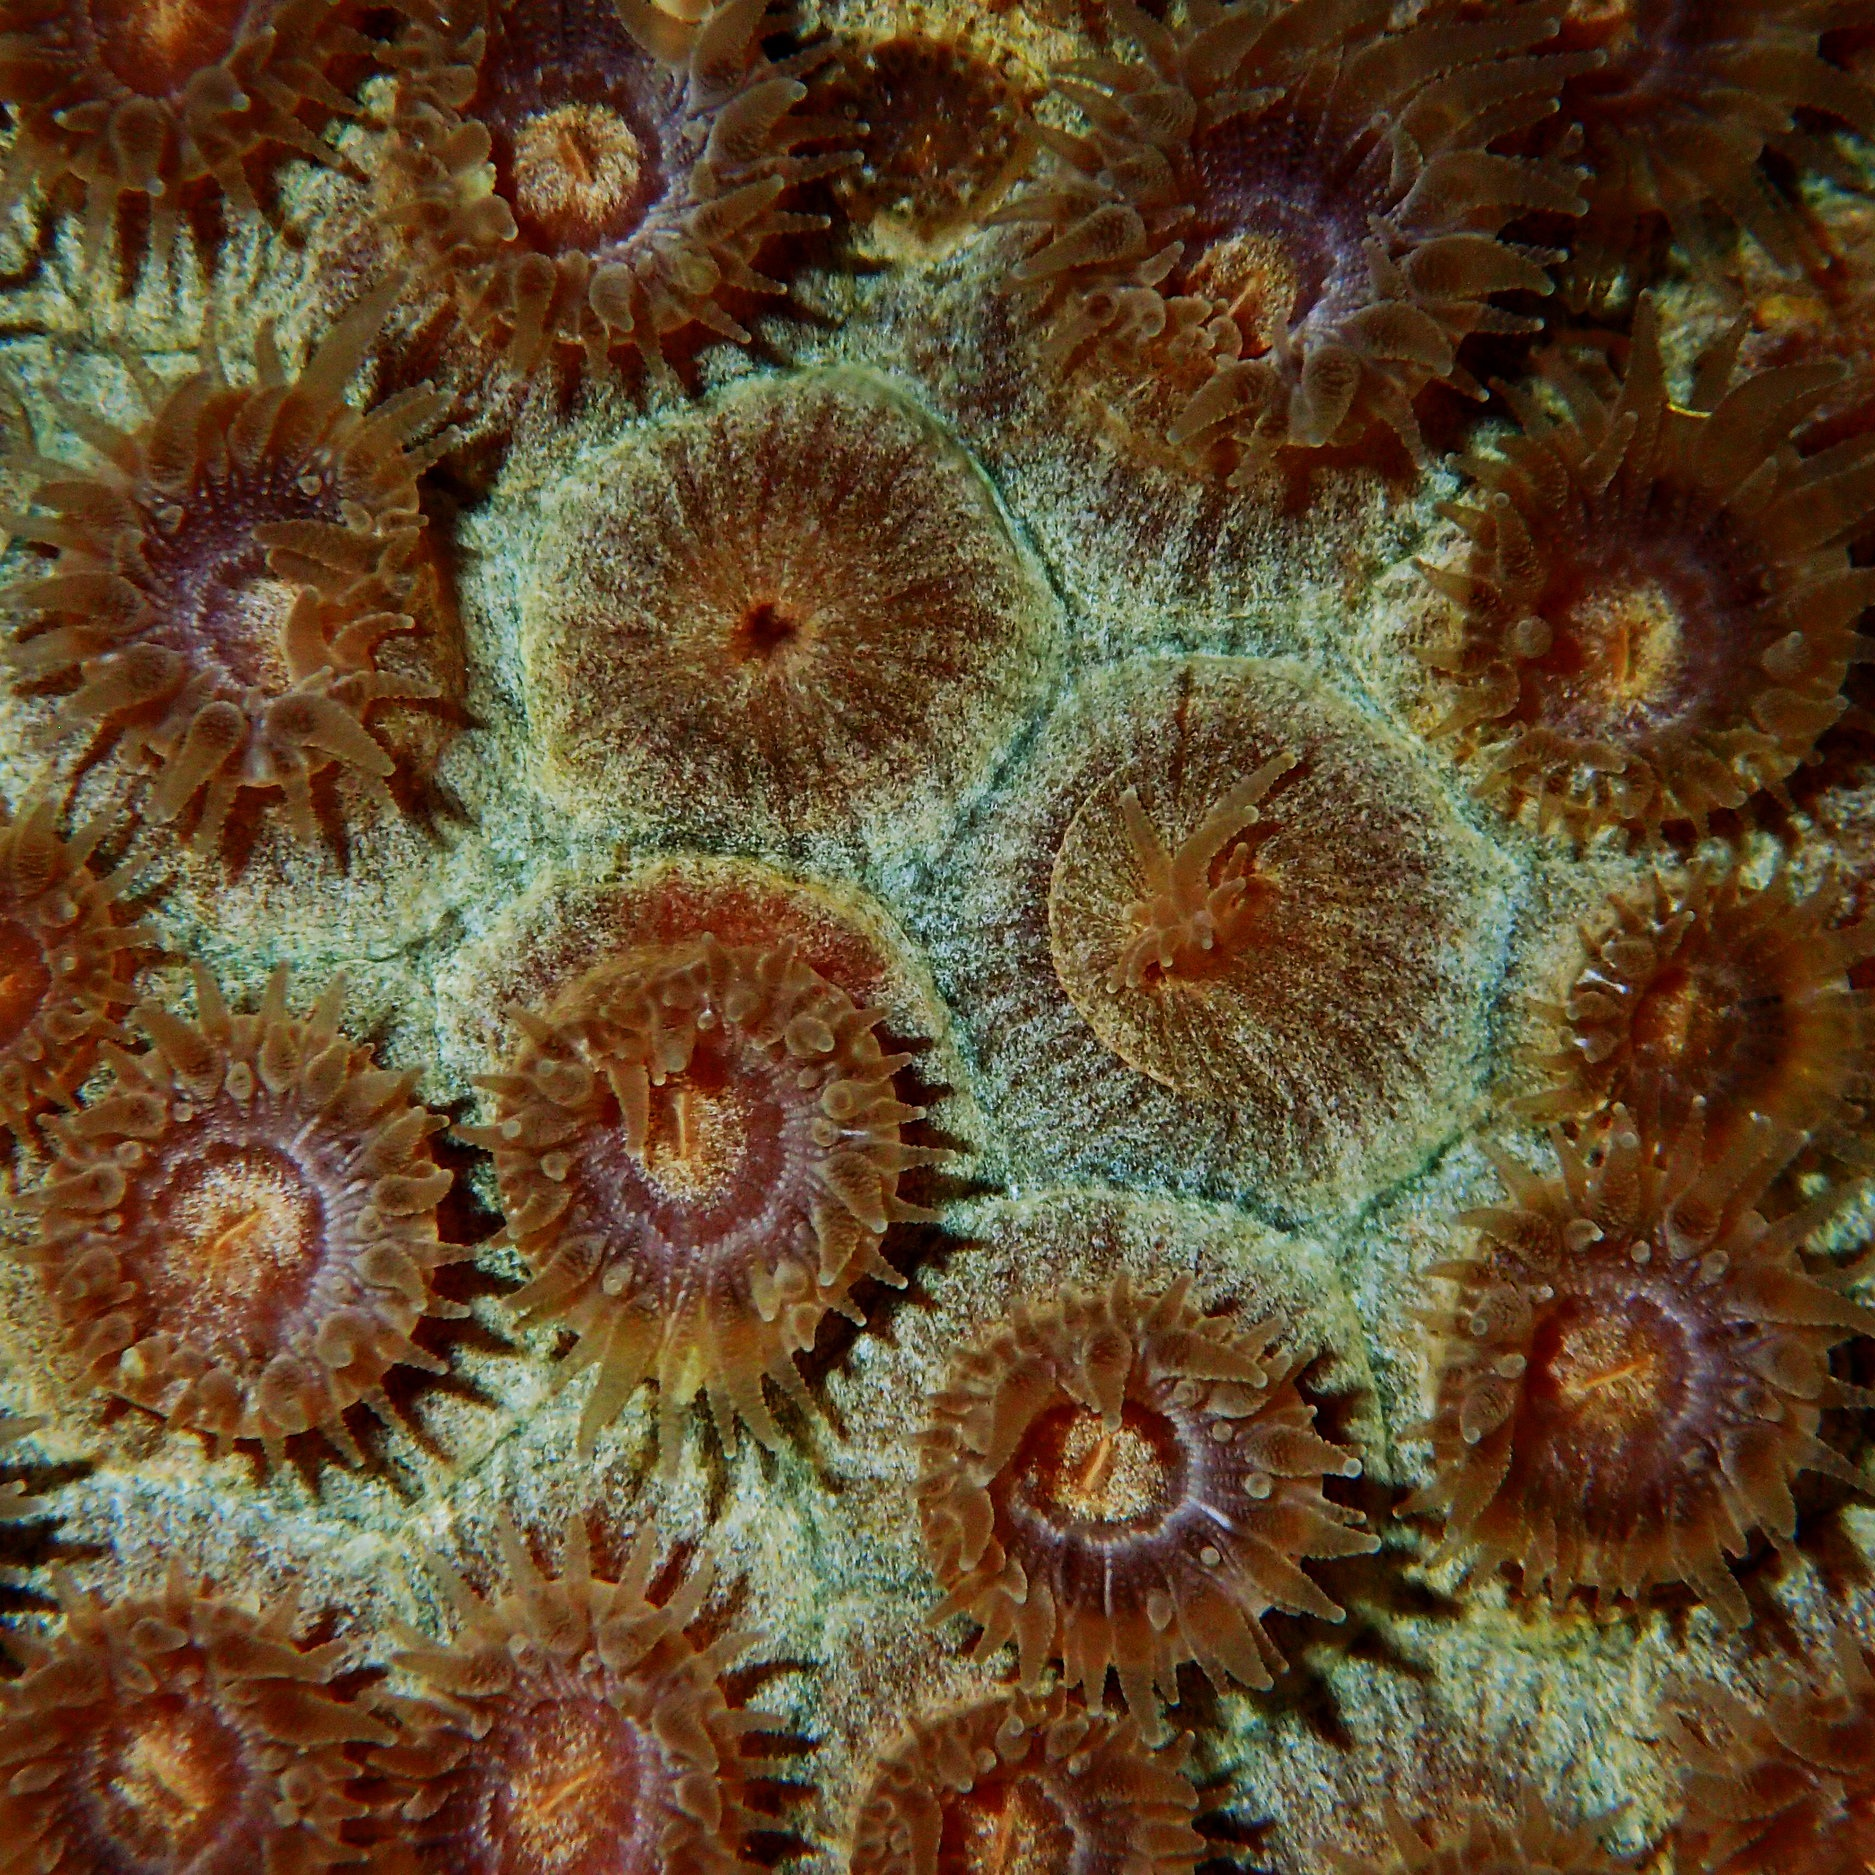 Great star coral ( Montastraea cavernosa ) polyps.